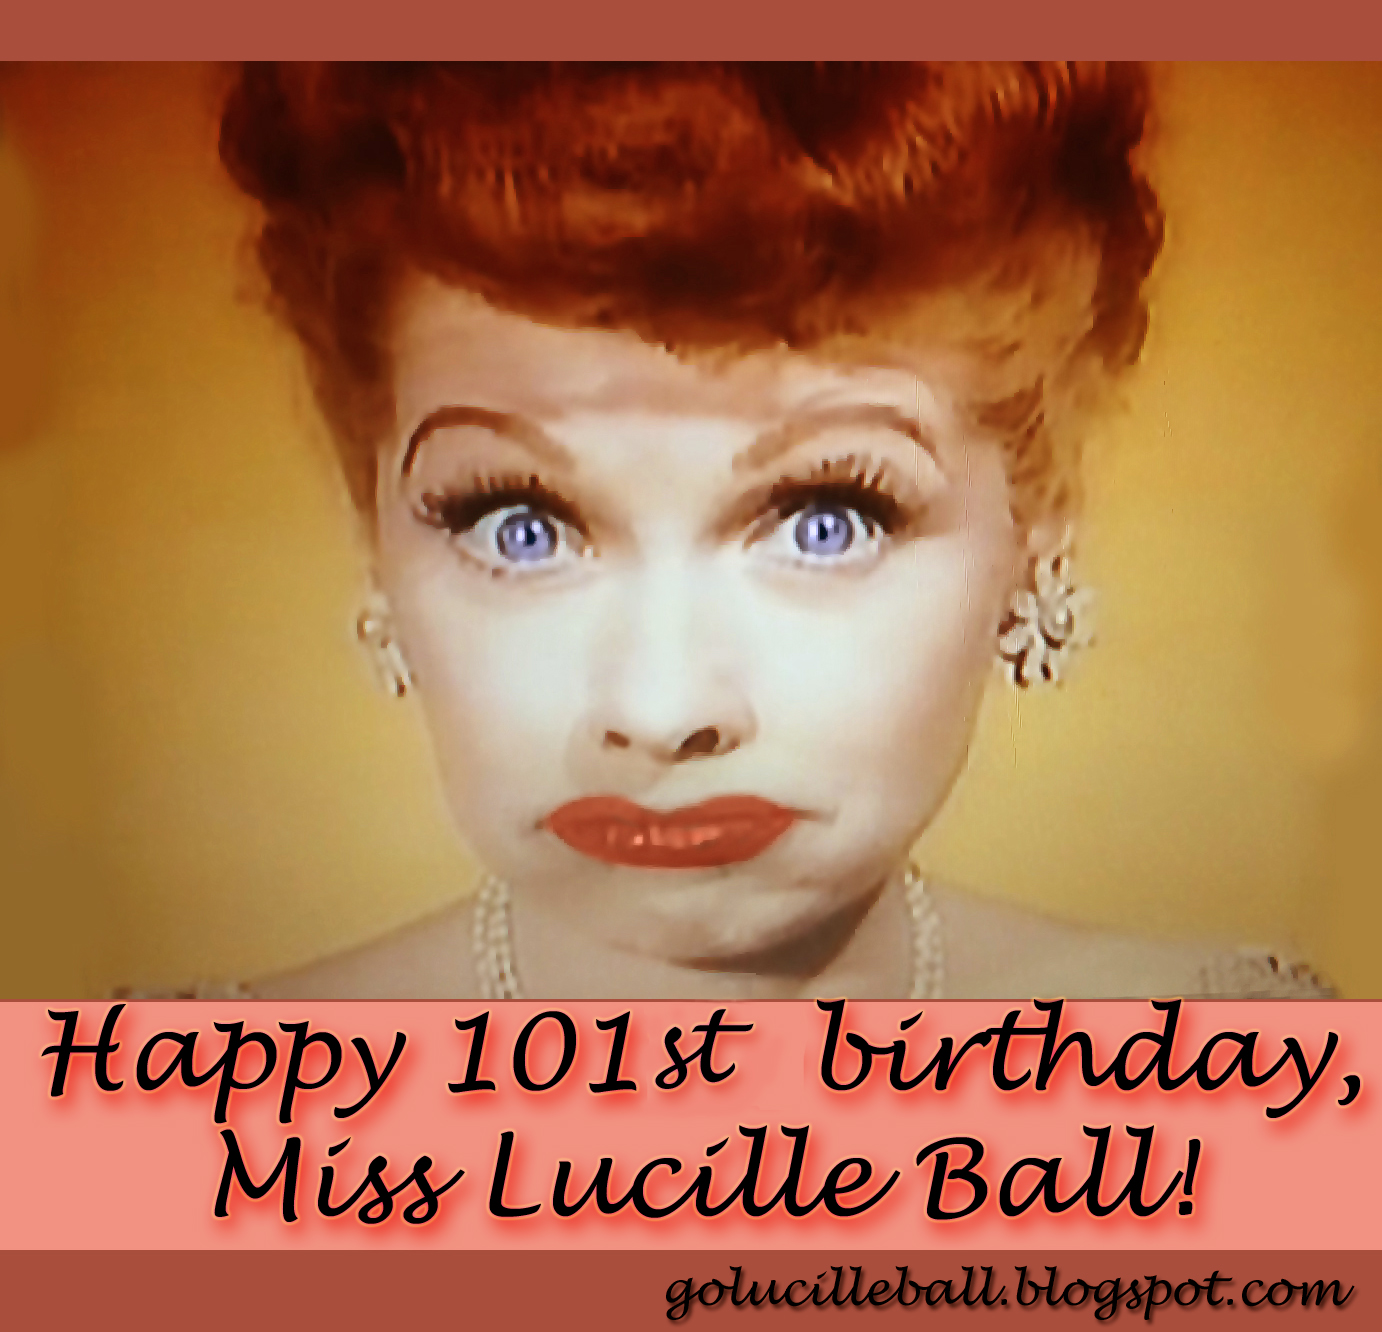 A Blog About Lucille Ball: Happy 101st Birthday, Miss